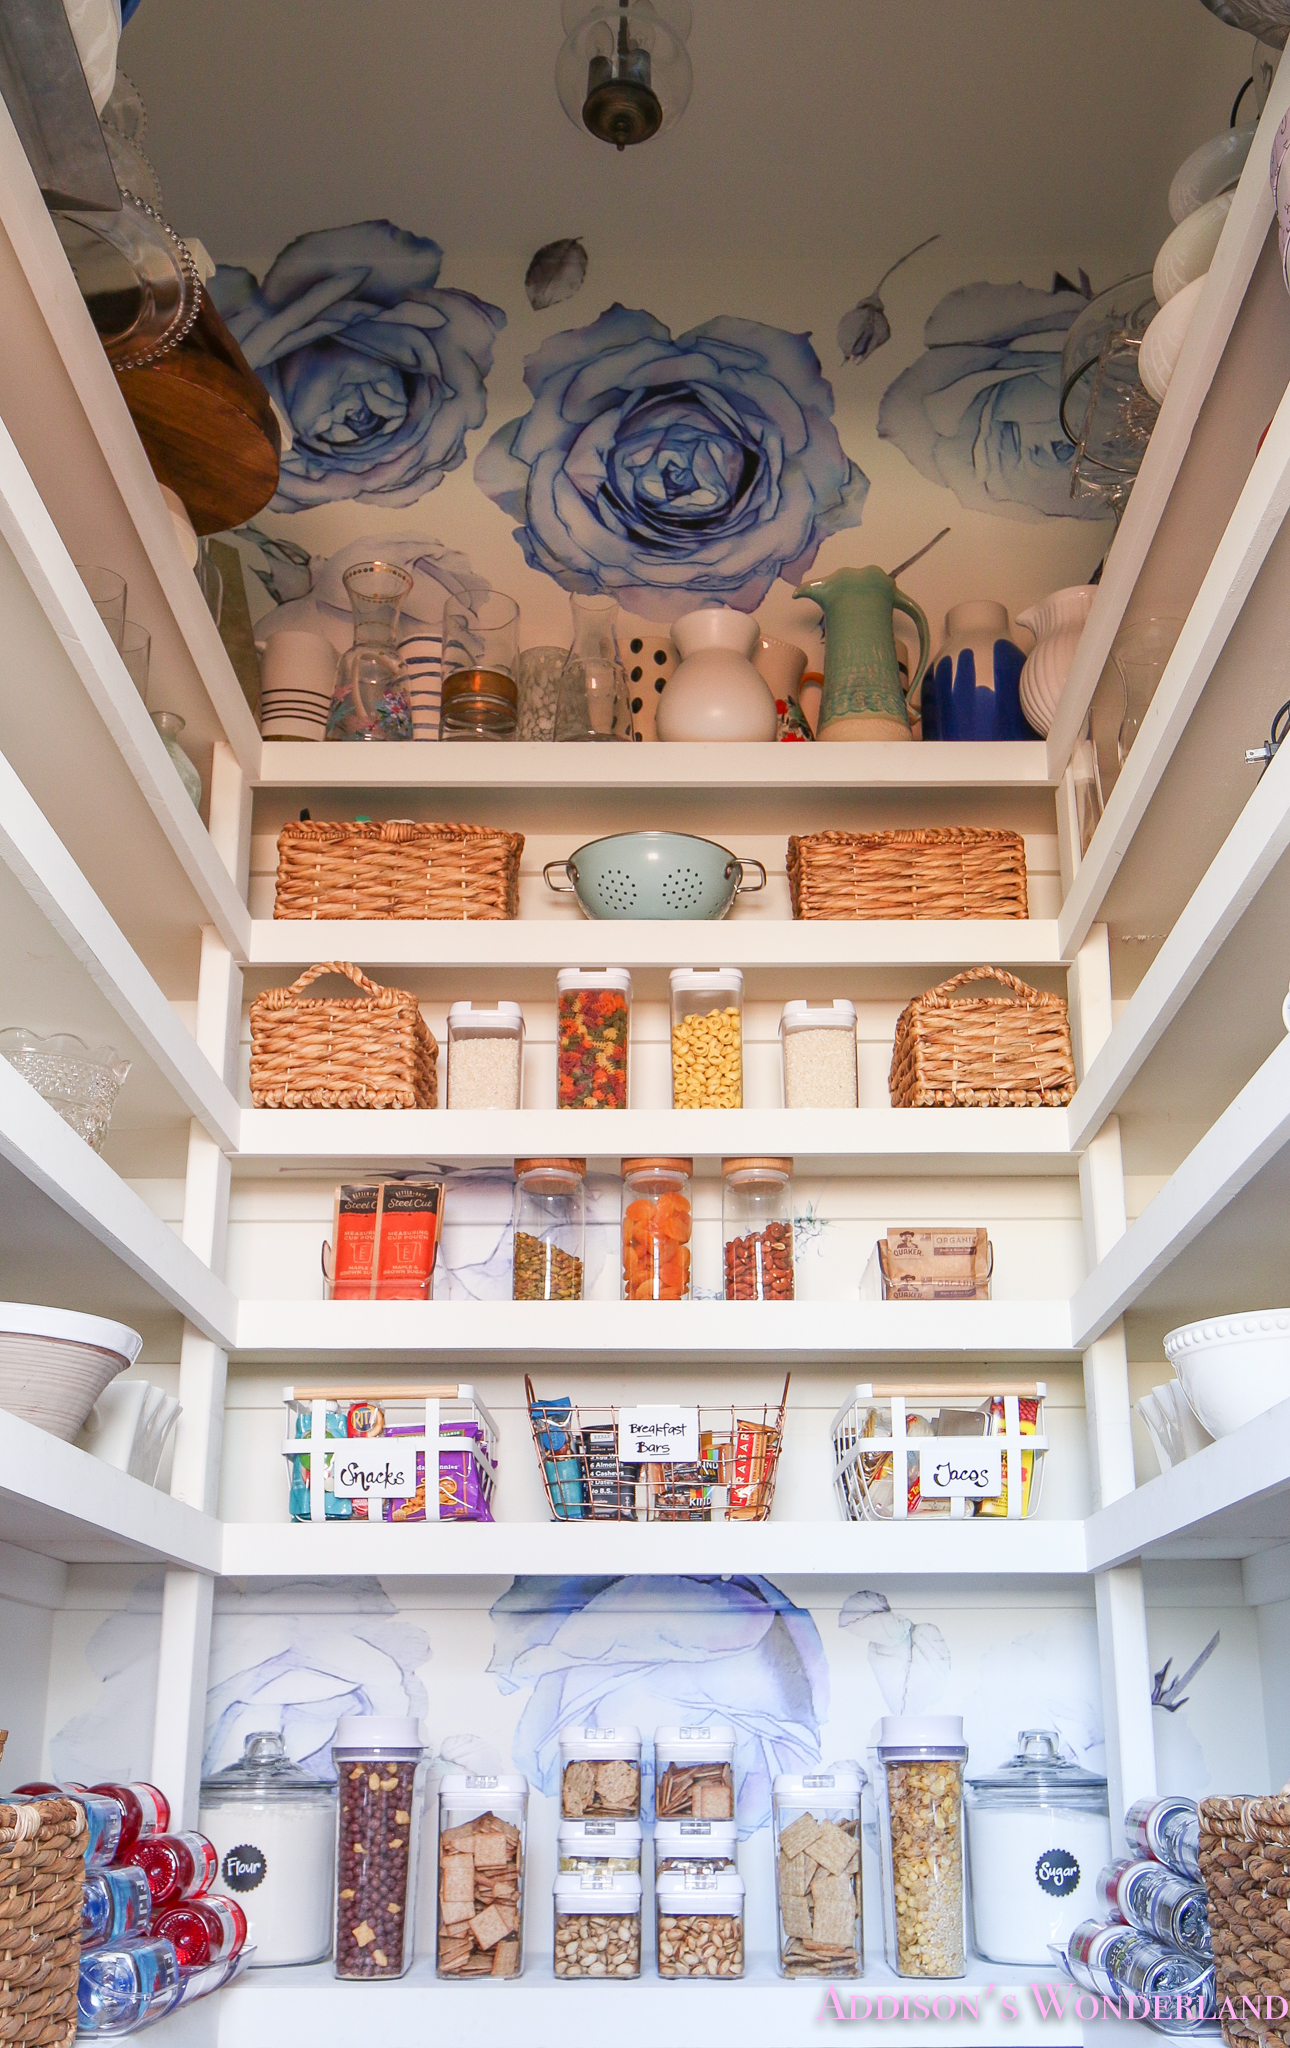 Pantry Organization Ideas From Our Colorful New Pantry